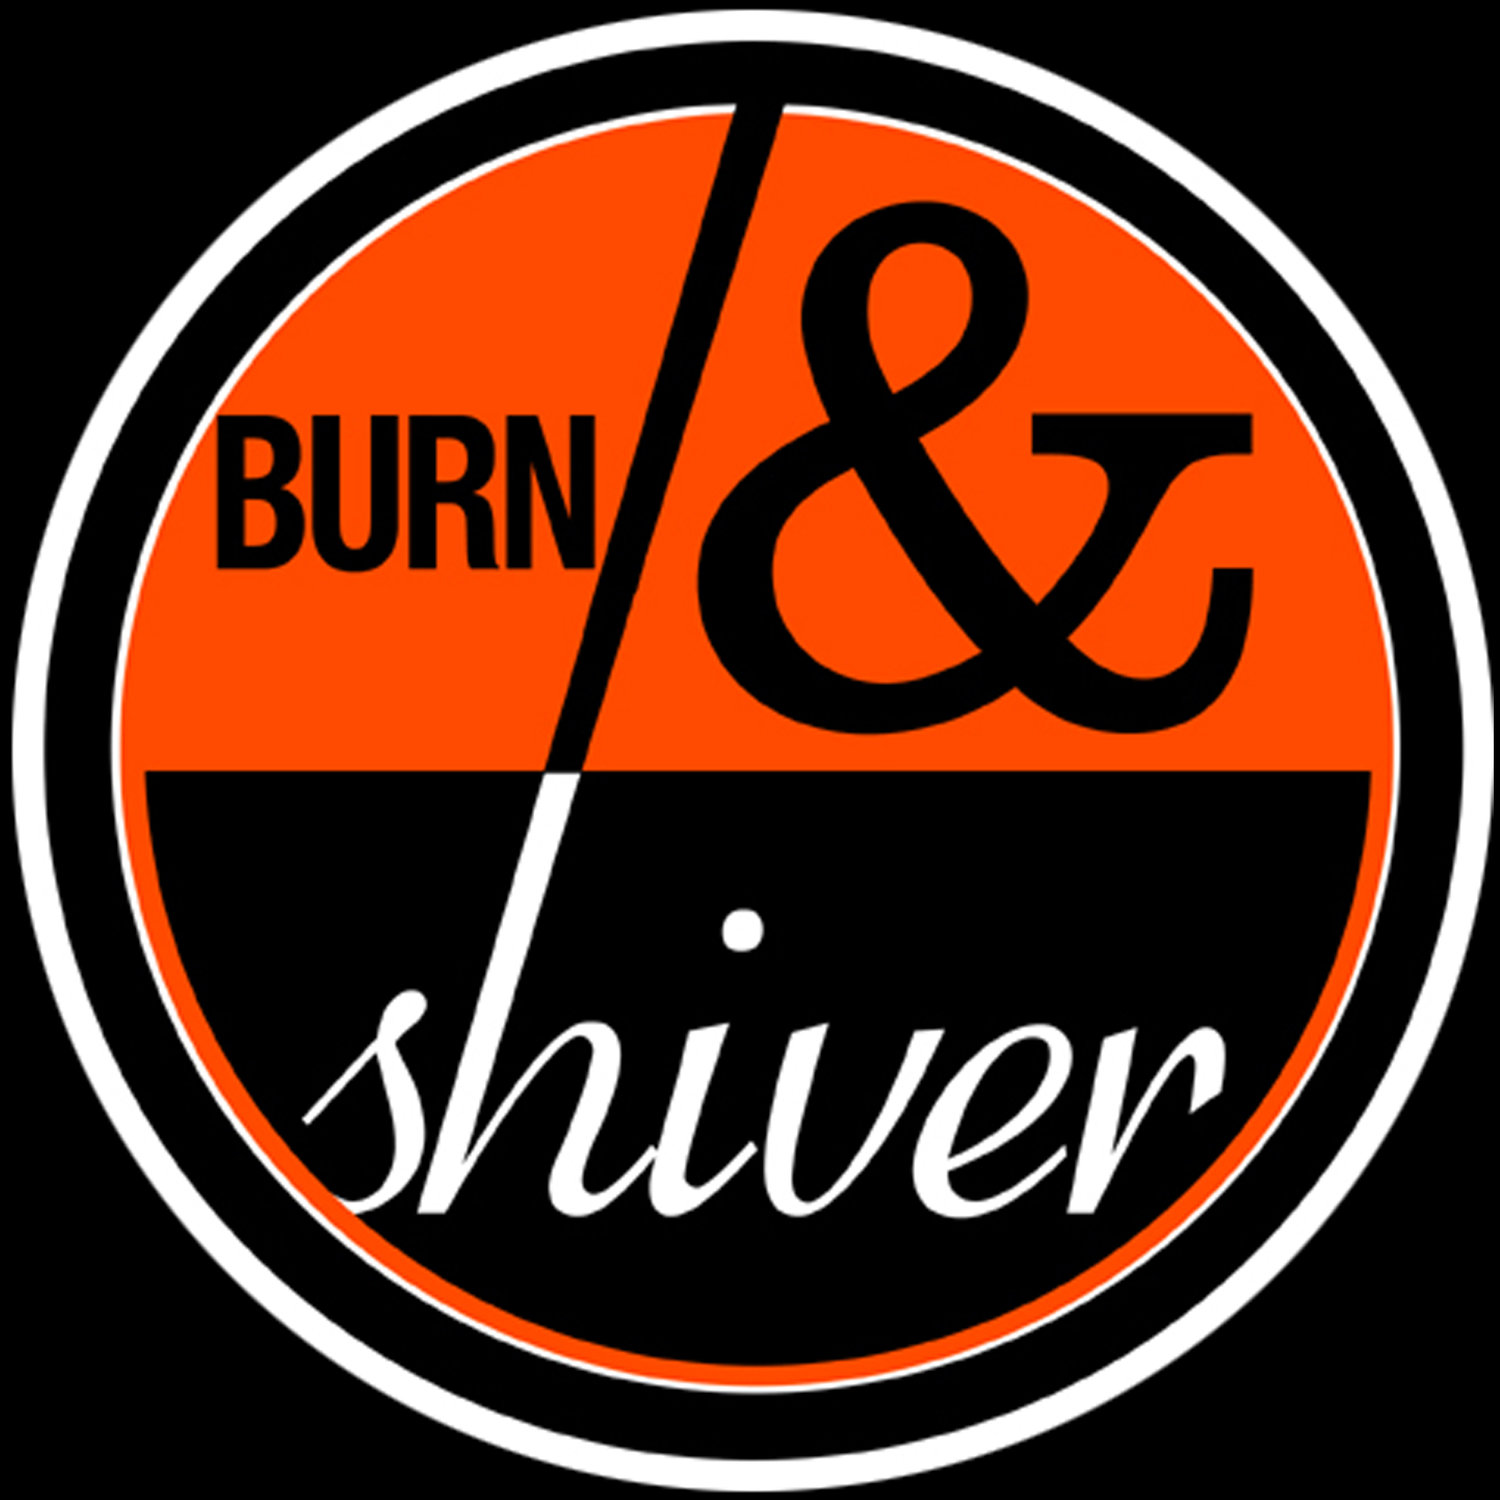 Burn and Shiver